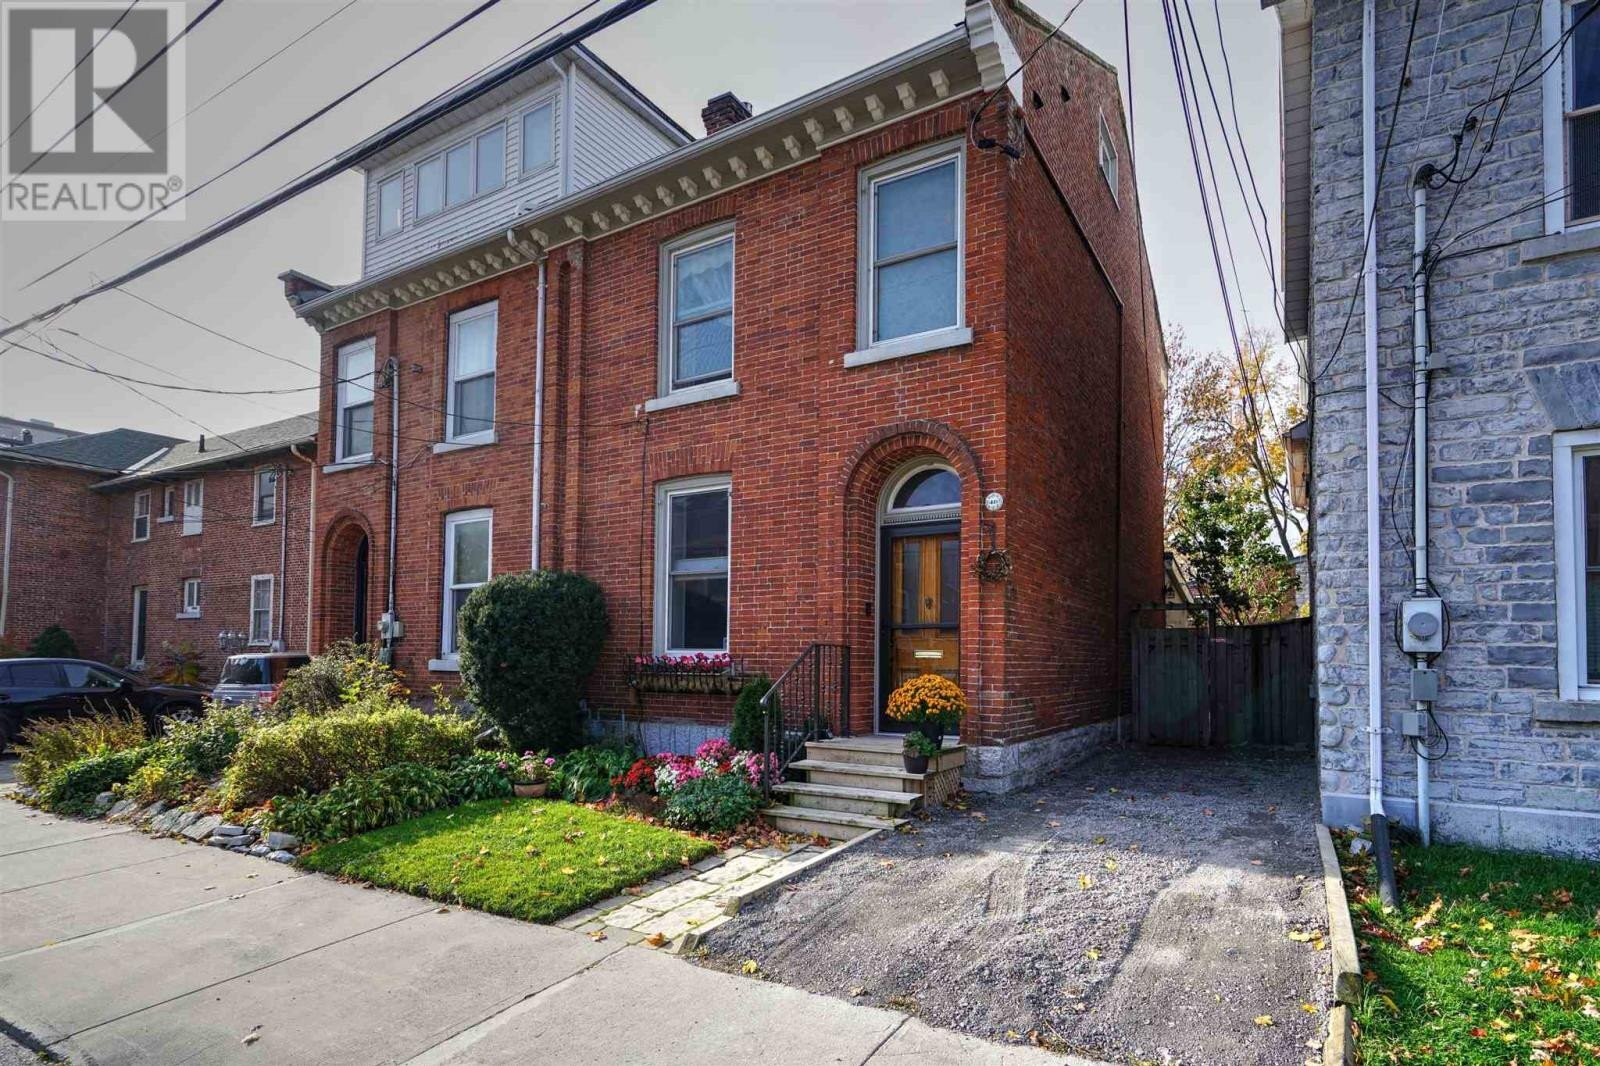 House for sale at 46 William St Kingston Ontario - MLS: K20006116